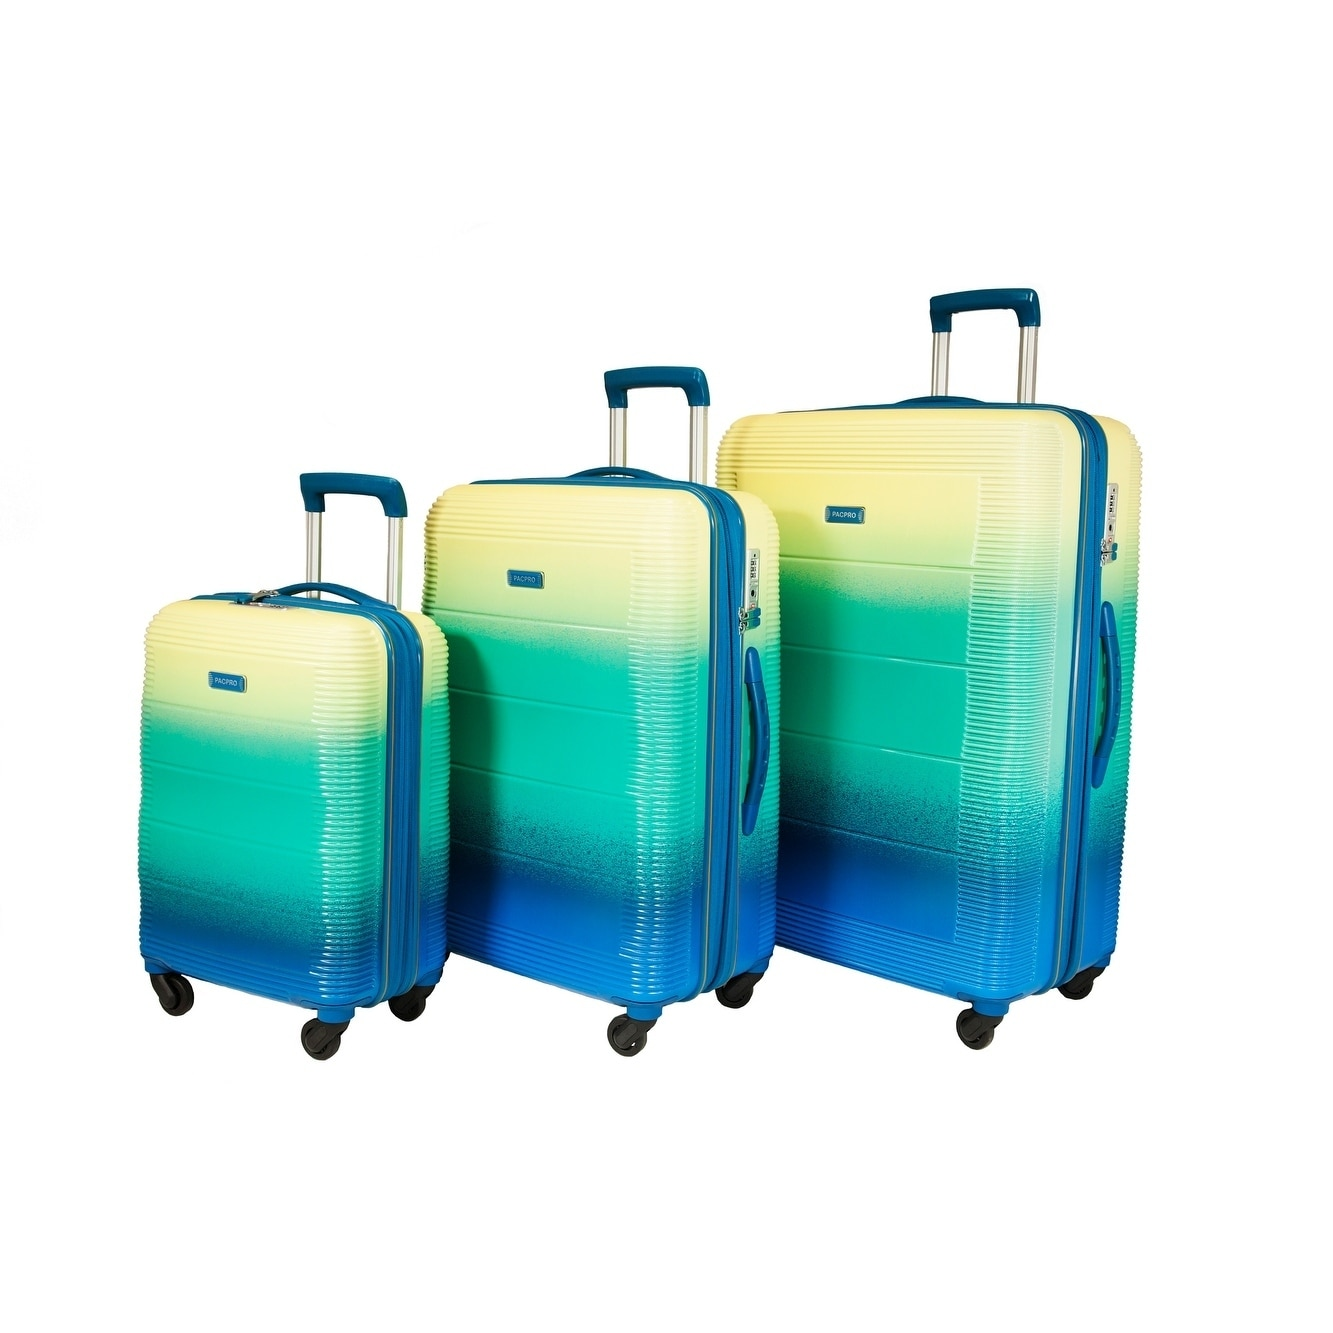 386d16101 Shop Pacpro Glossy 3-piece Hardside Spinner Luggage Set - Free Shipping  Today - Overstock - 17541358